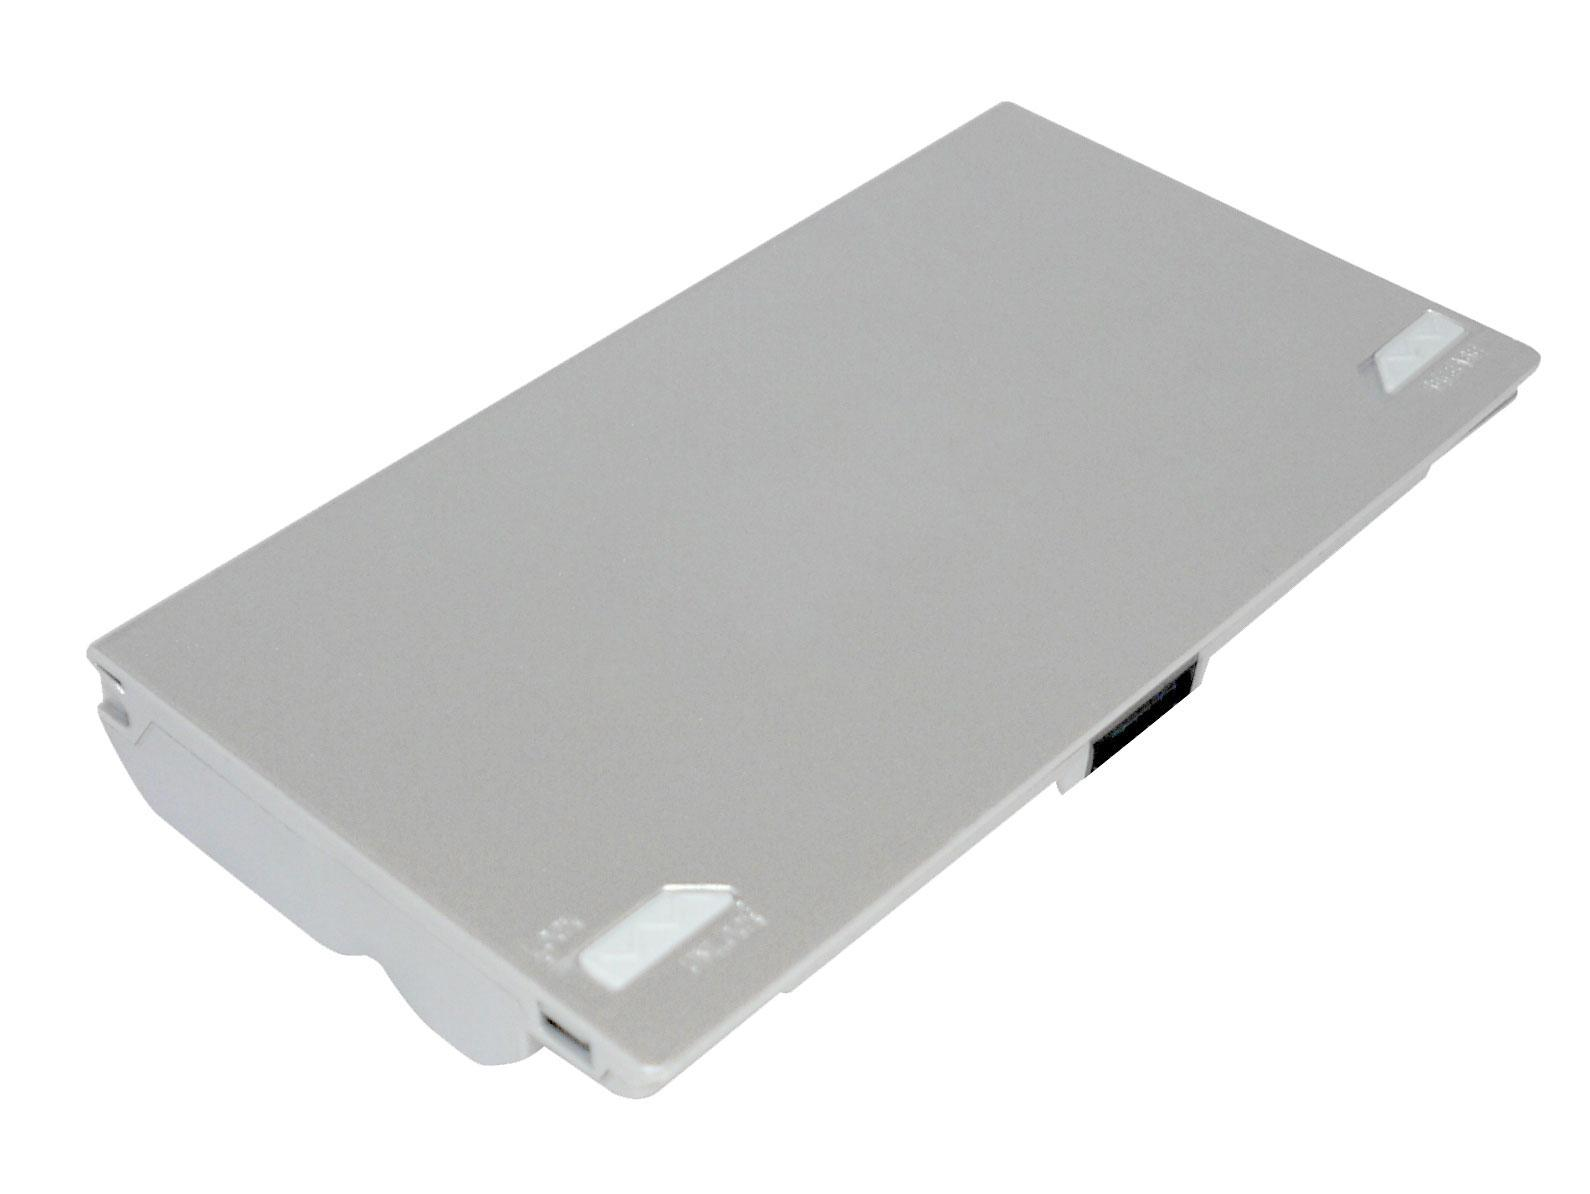 Replacement Sony VAIO VGN-FZ52B Battery